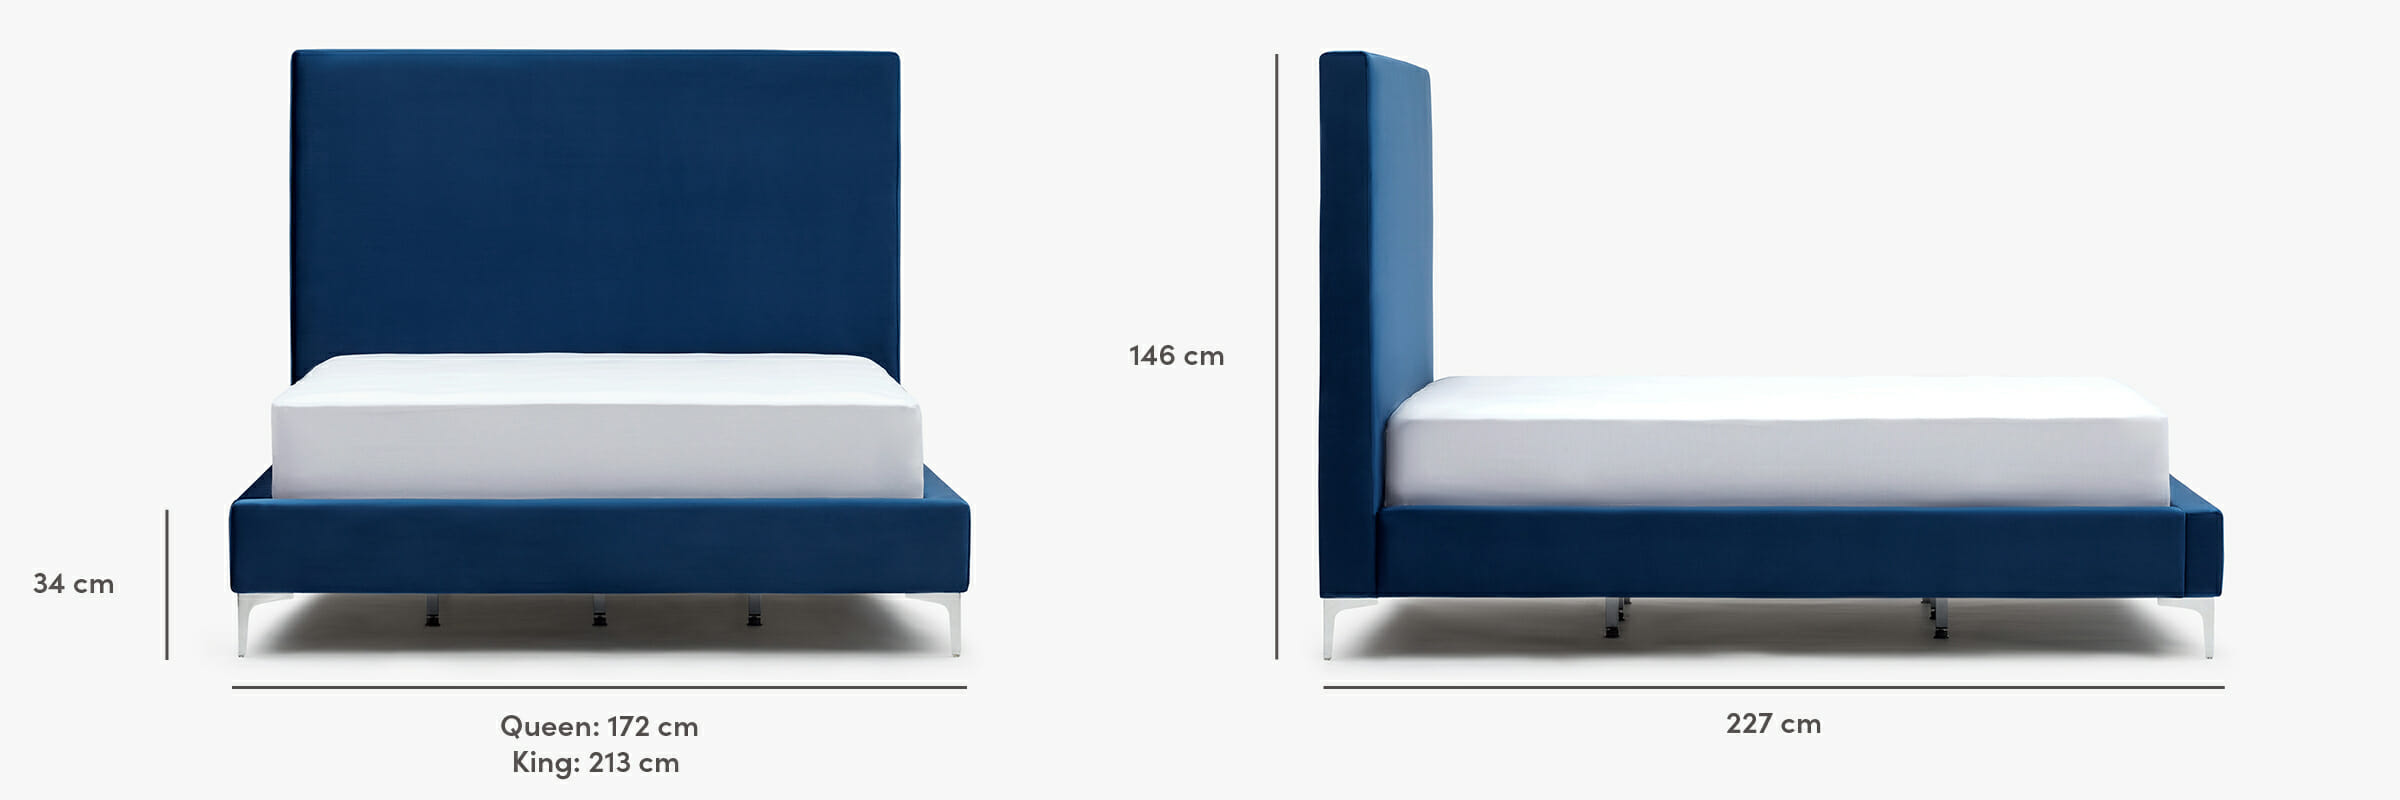 Modena bed dimensions